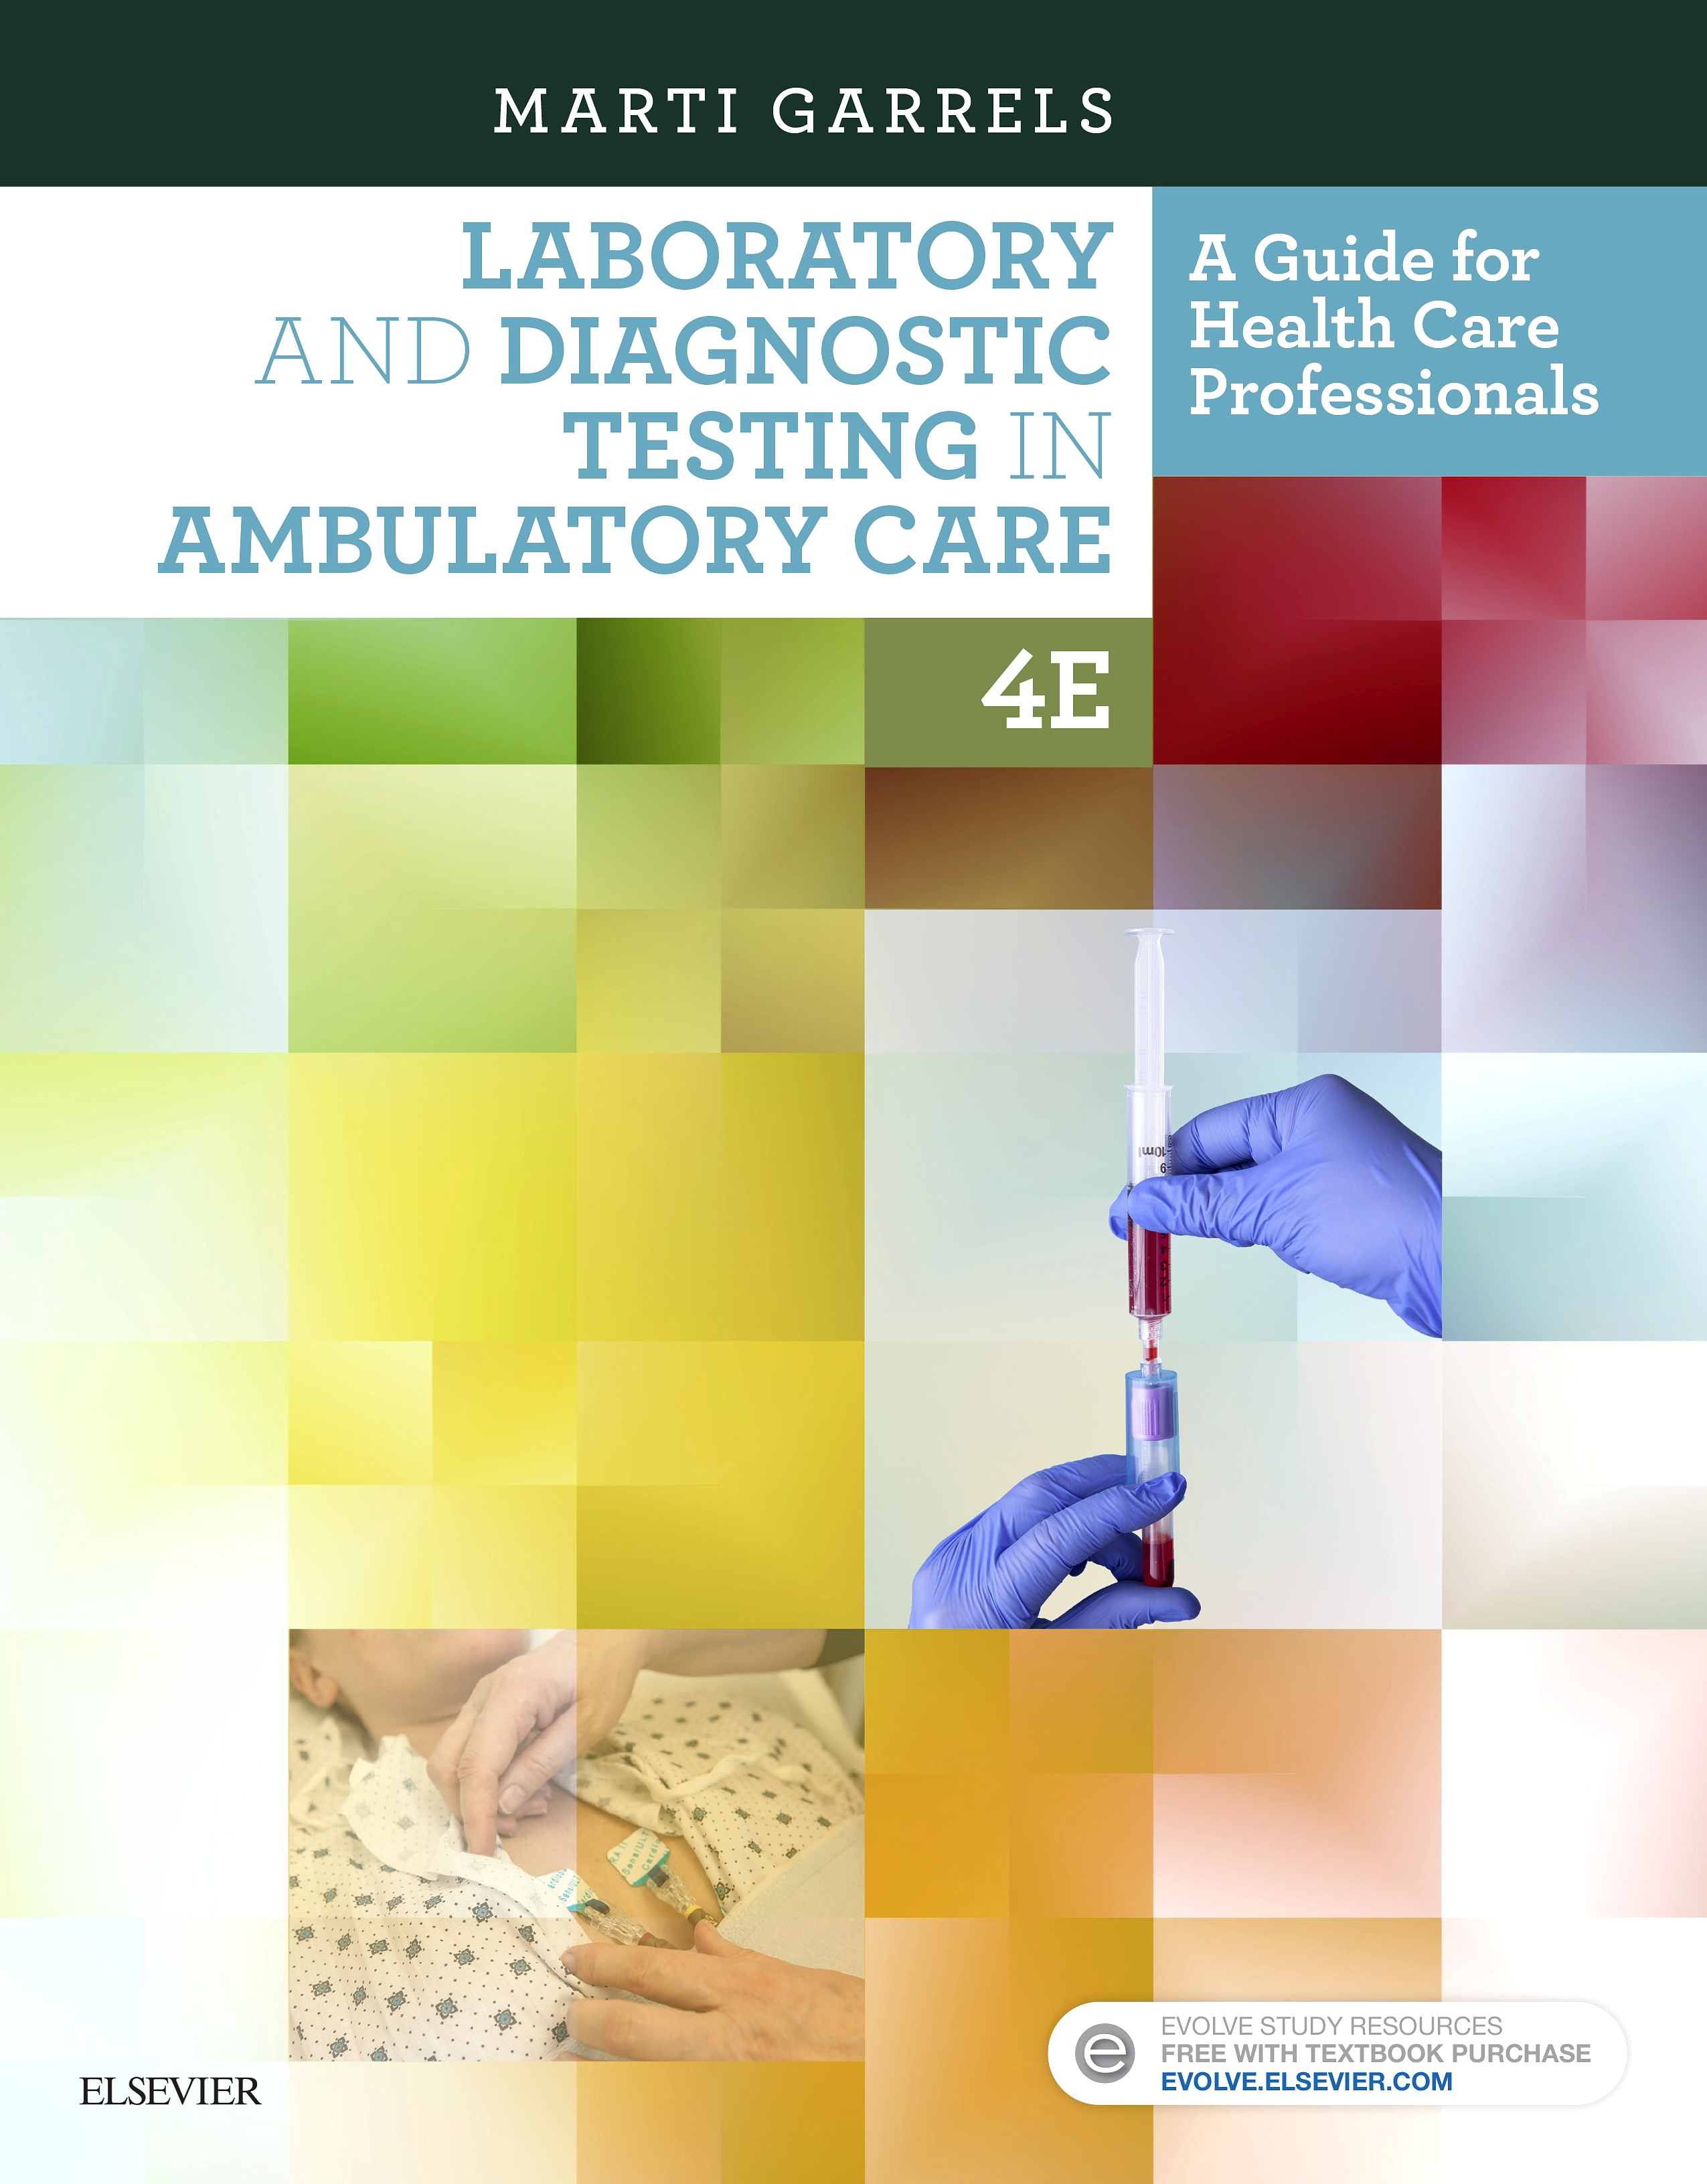 Evolve Resources for Laboratory and Diagnostic Testing in Ambulatory Care, 4th Edition